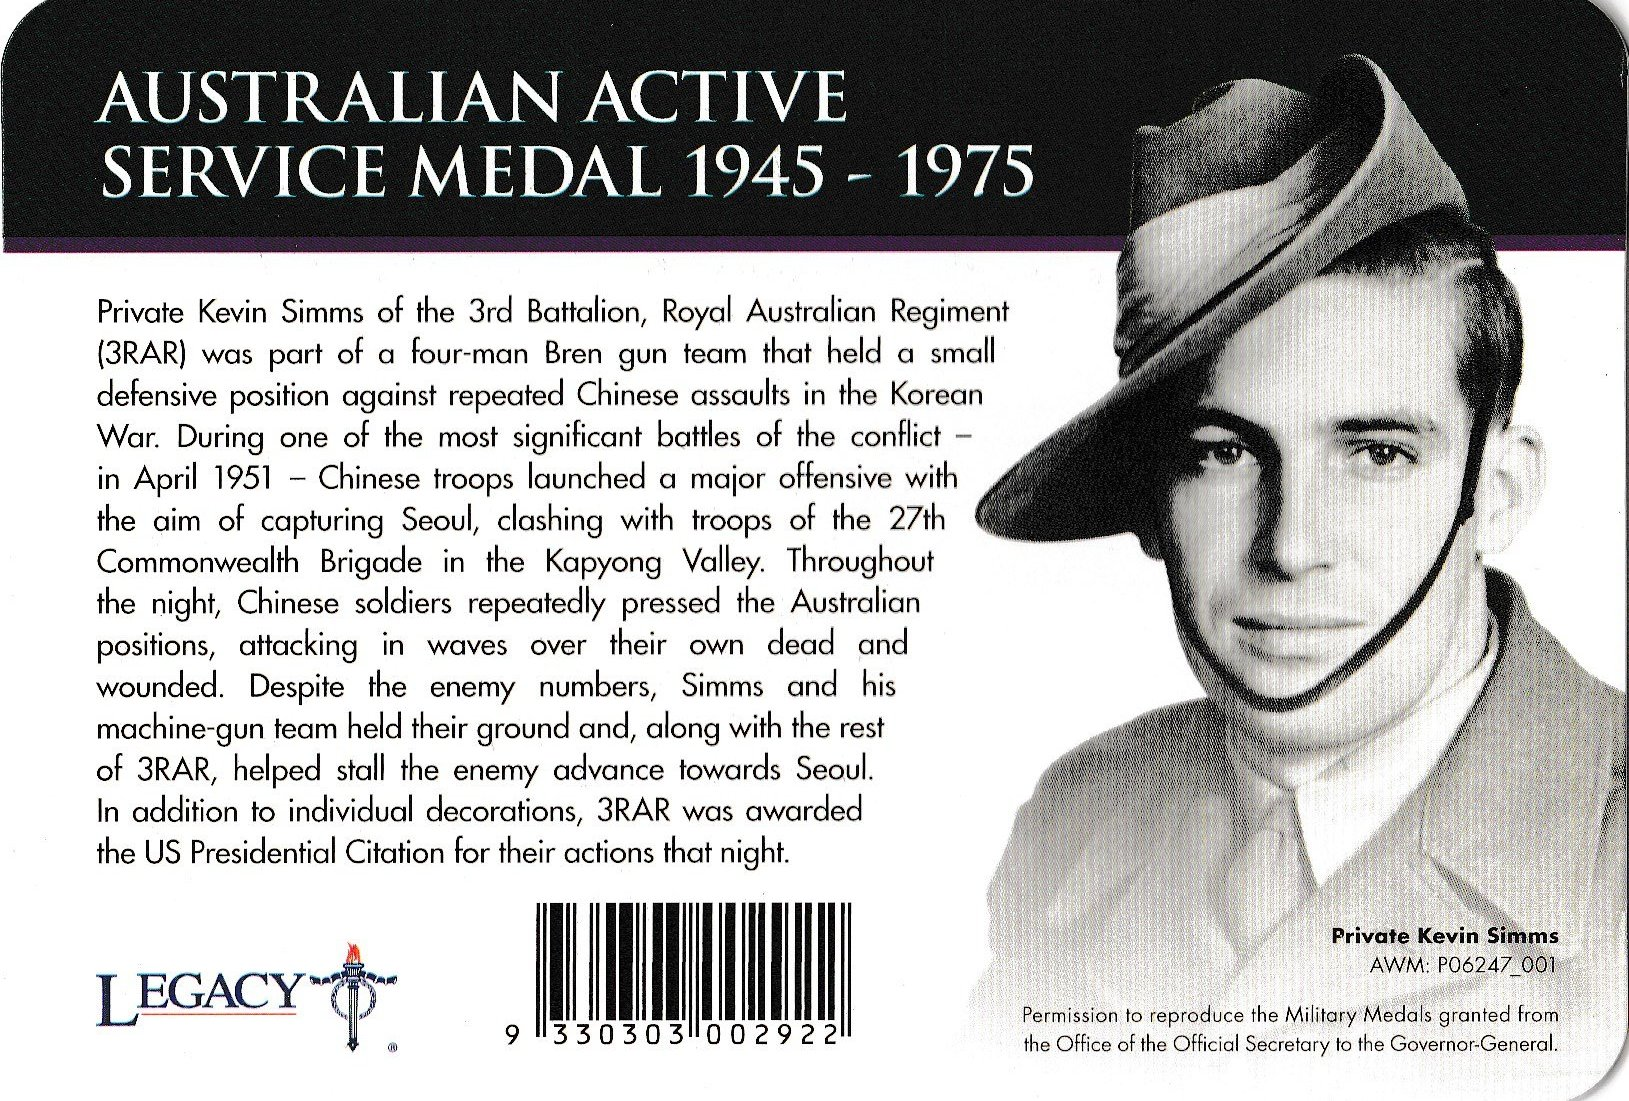 2017 20 Cent AUSTRALIAN ACTIVE SERVICE MEDAL 1945-1975 100 Yrs of ANZAC